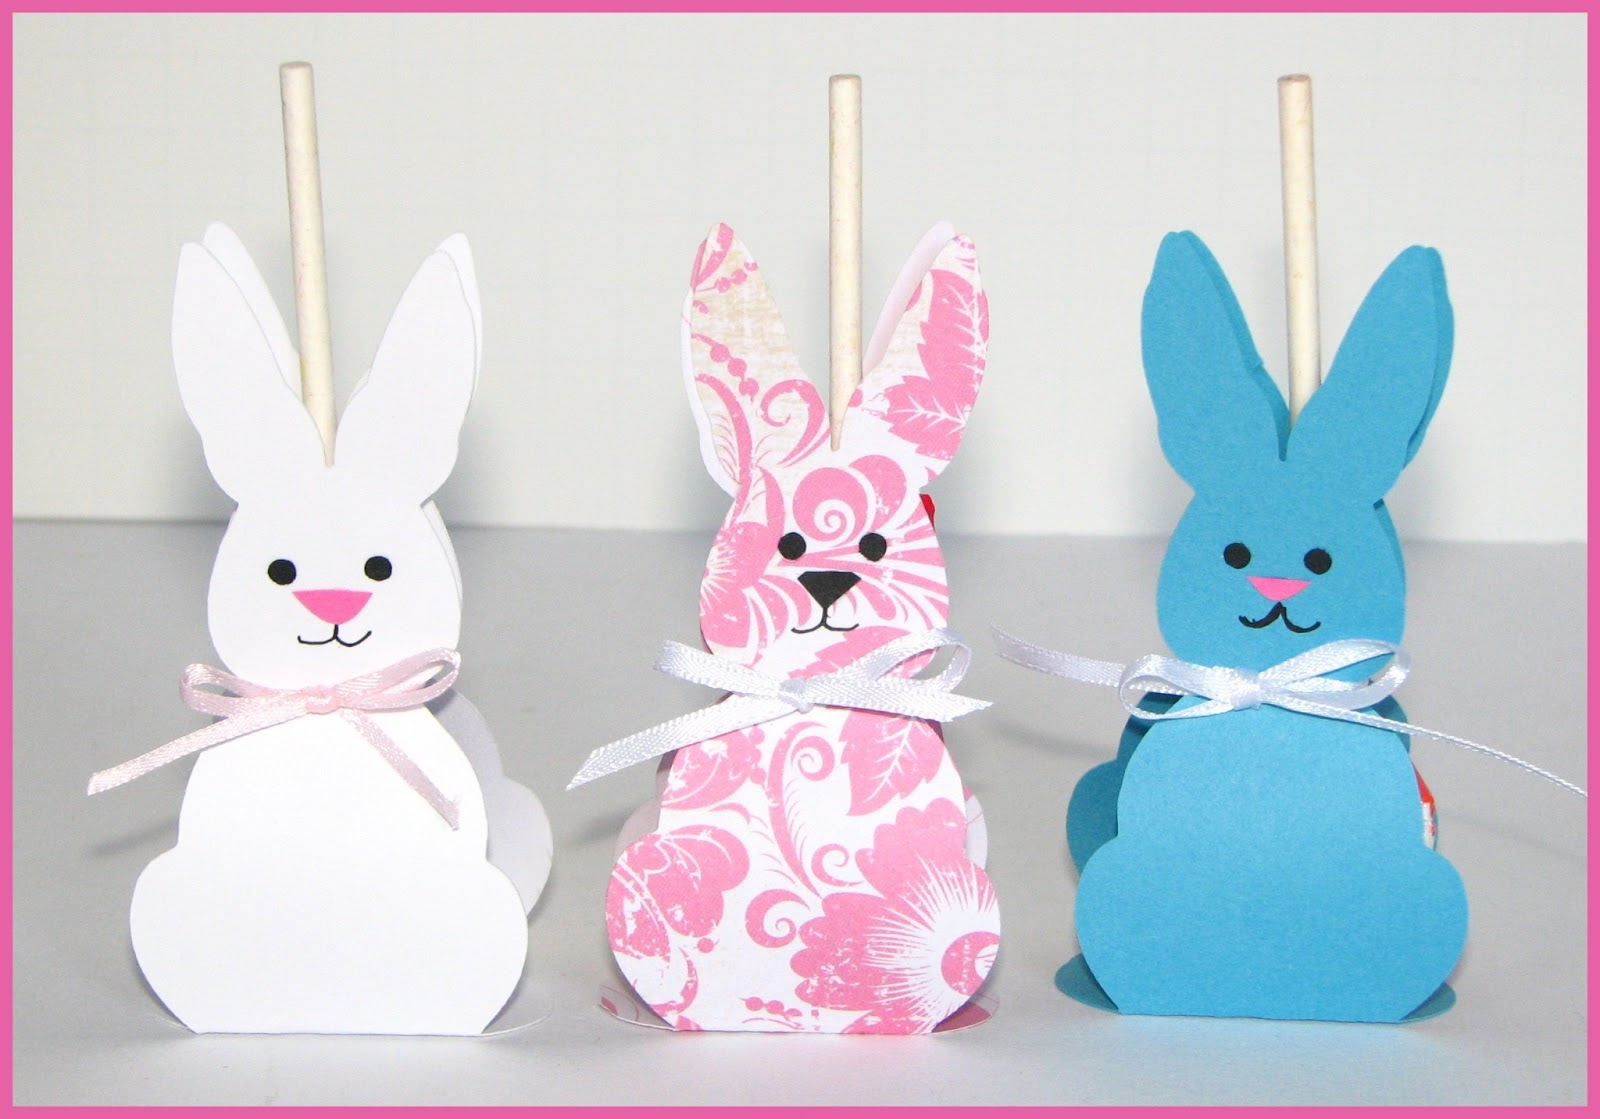 Cricut Craft Room Help: Around The Block With Scrapalette: Bunny Lollipop Holders